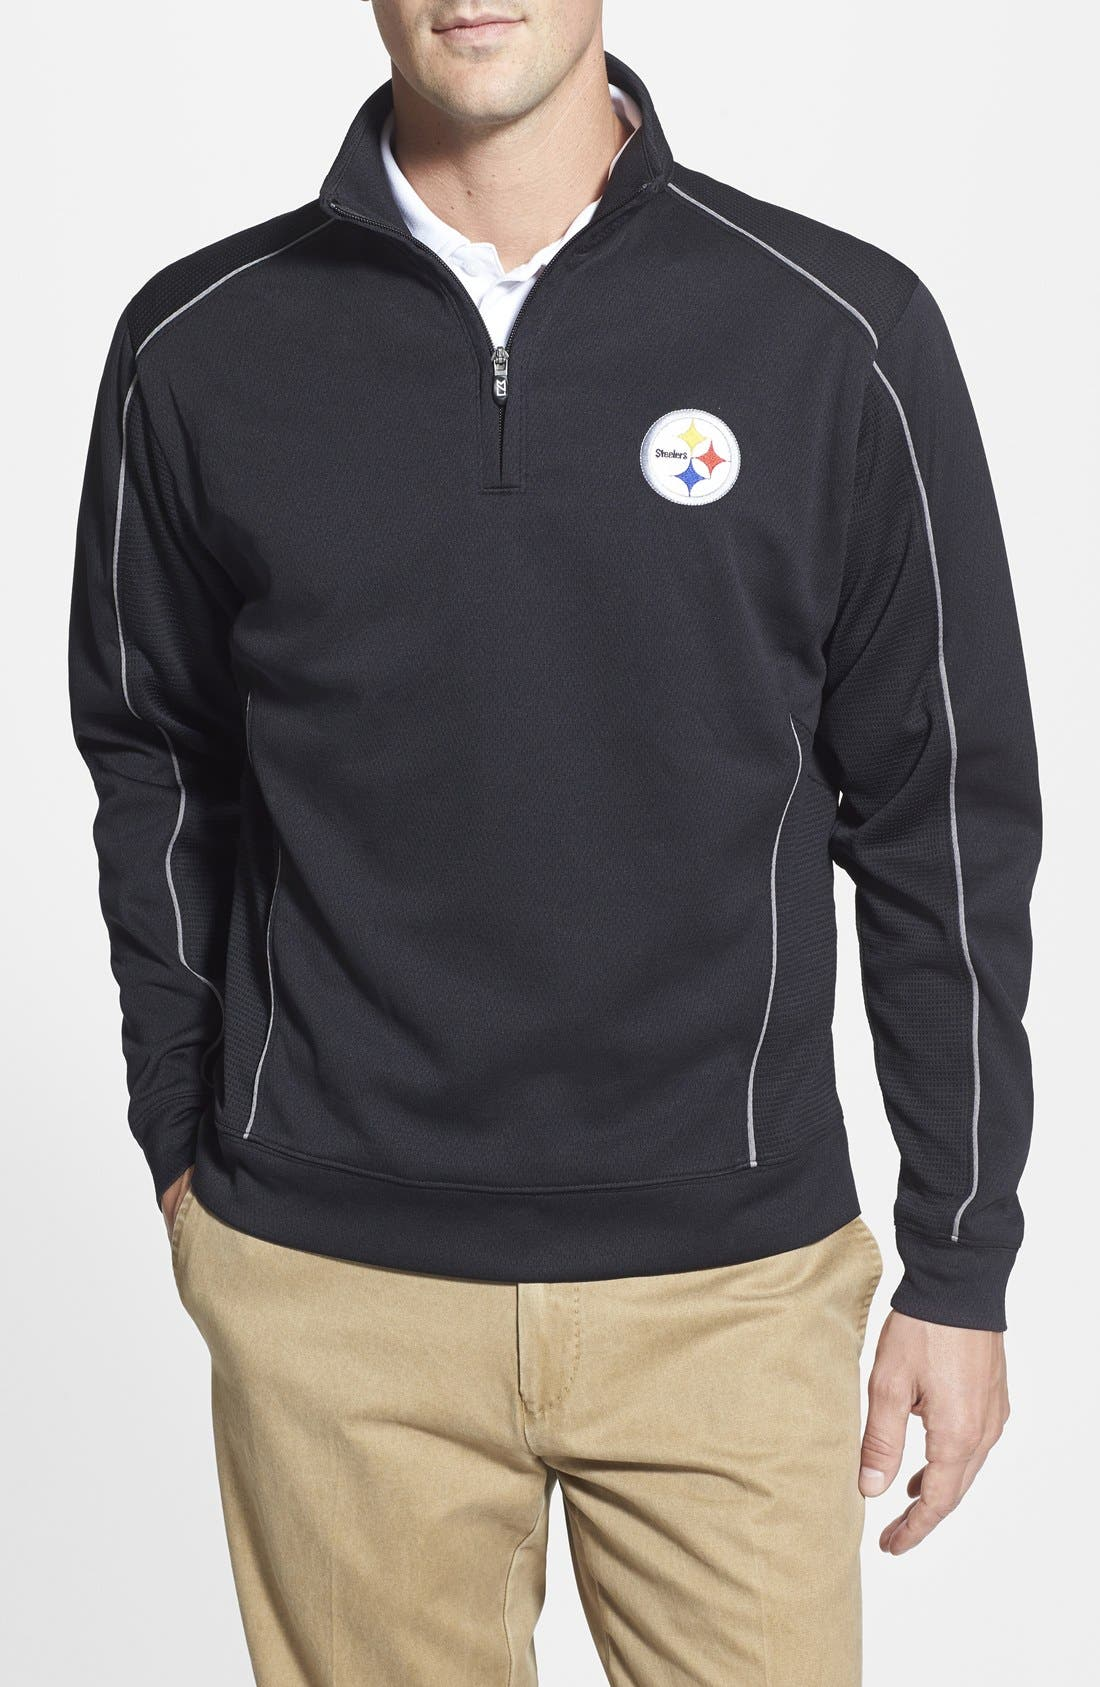 Alternate Image 1 Selected - Cutter & Buck 'Pittsburgh Steelers - Edge' DryTec Moisture Wicking Half Zip Pullover